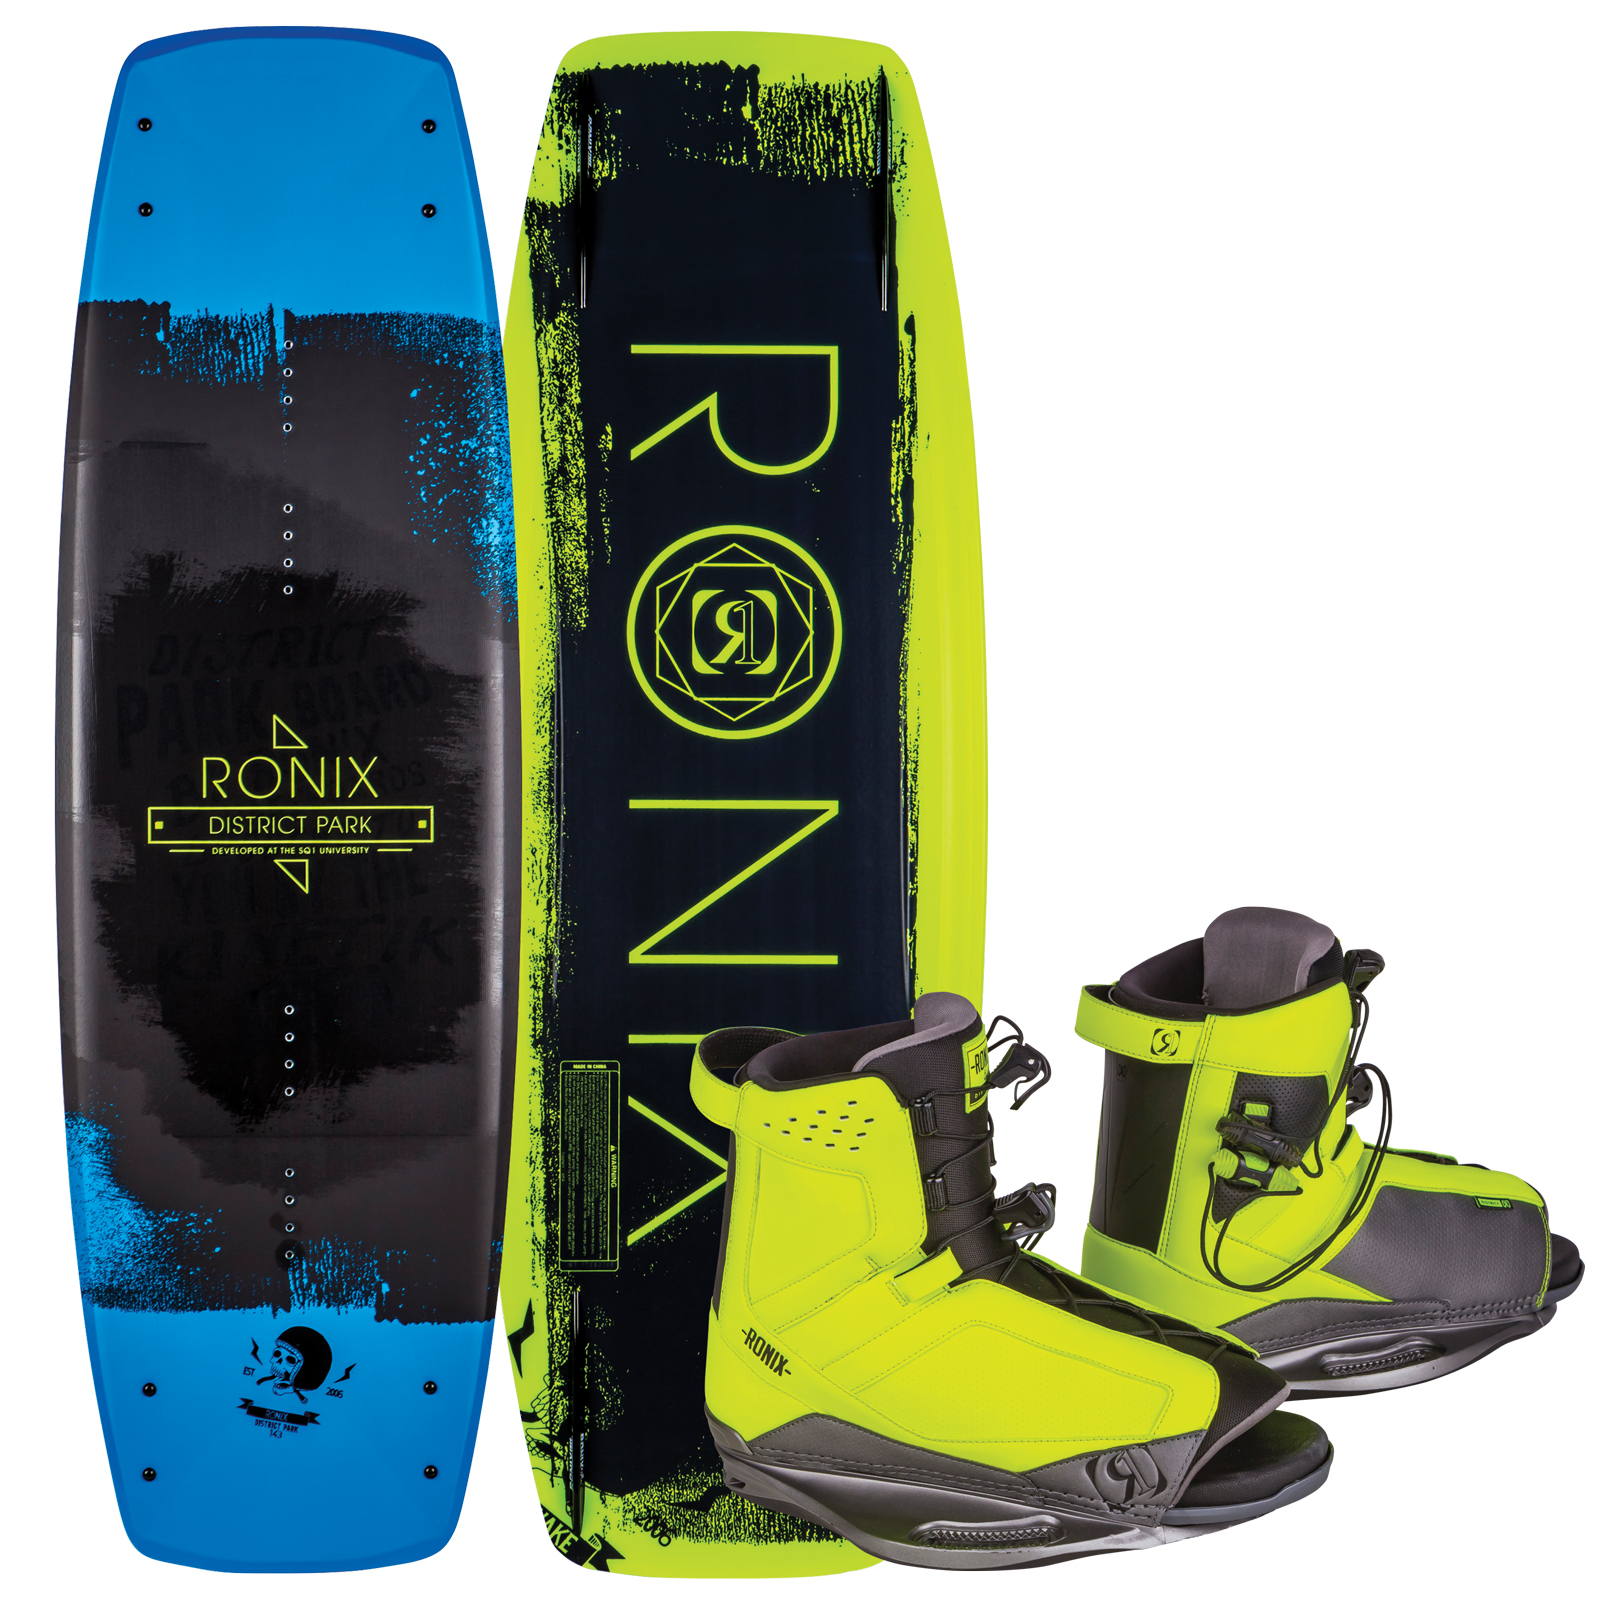 DISTRICT PARK 129 W/ DISTRICT PACKAGE RONIX 2017